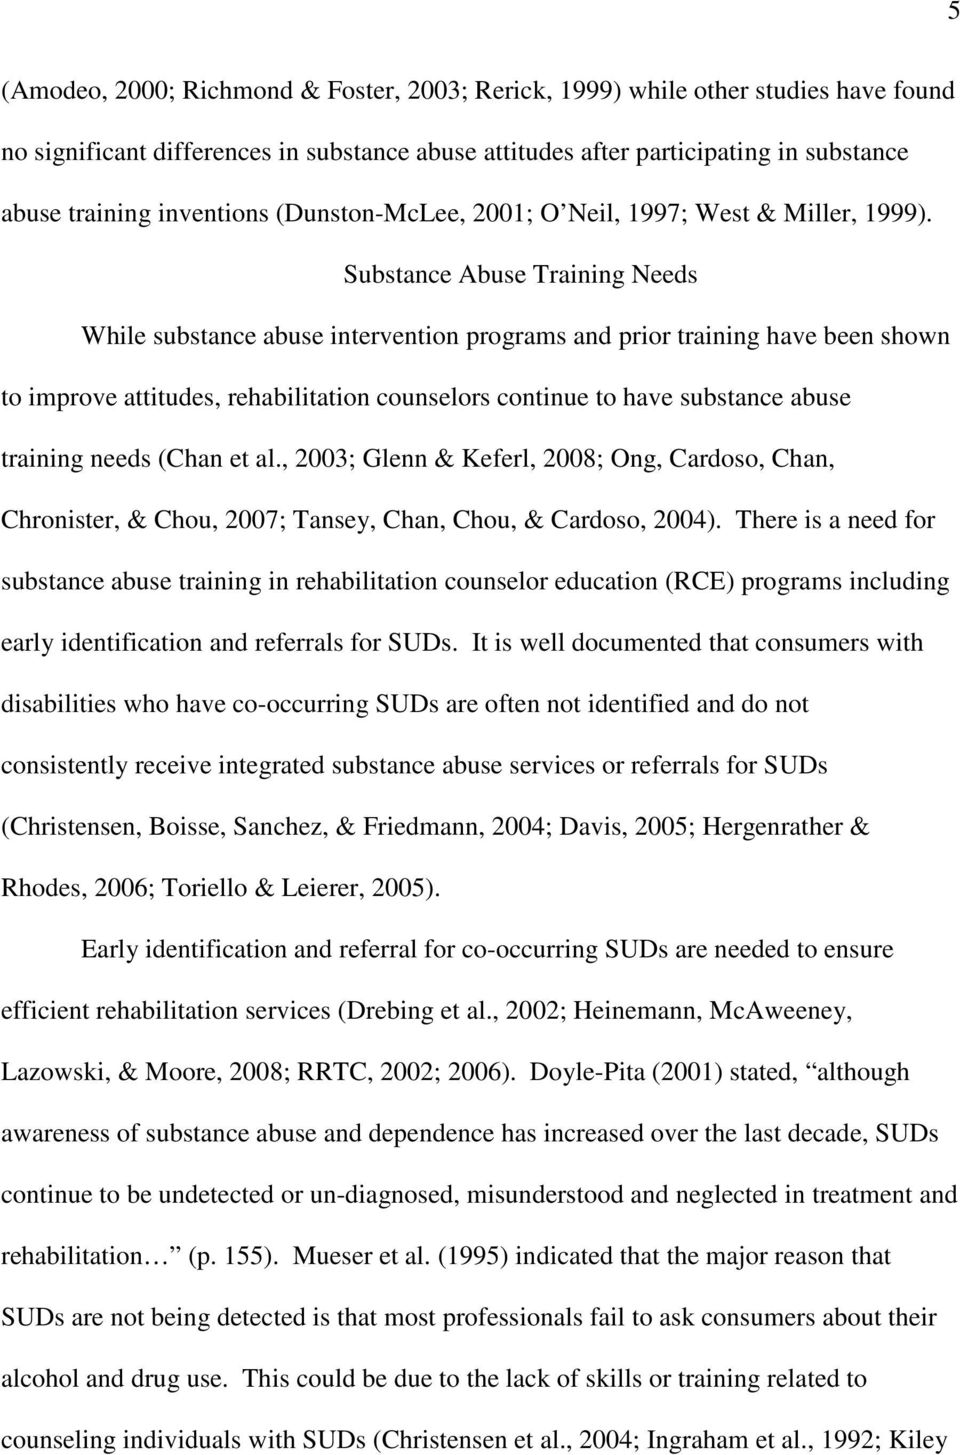 Substance Abuse Training Needs While substance abuse intervention programs and prior training have been shown to improve attitudes, rehabilitation counselors continue to have substance abuse training